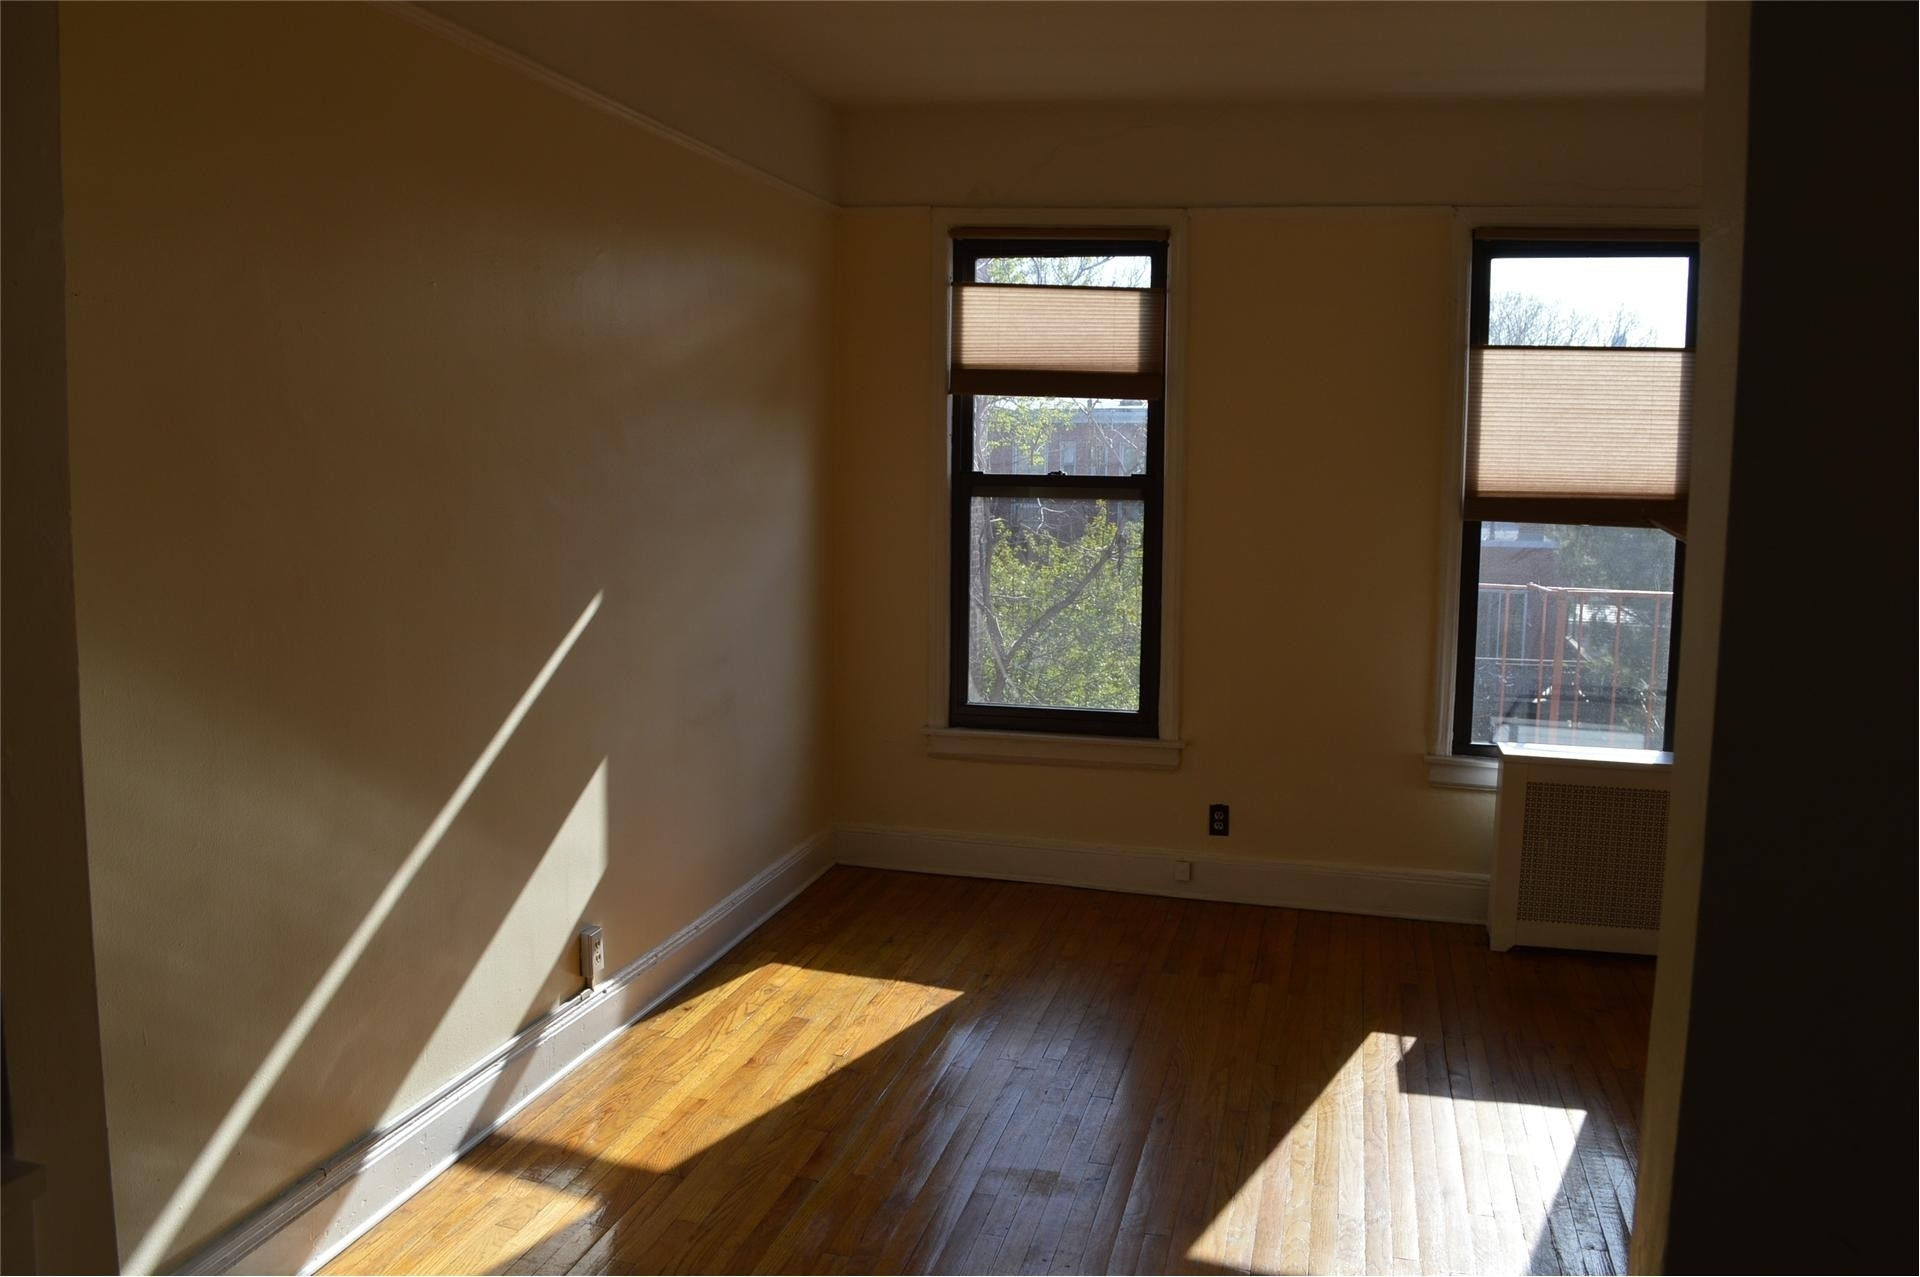 1. 建於685 Manhattan Avenue, Greenpoint, Brooklyn, NY